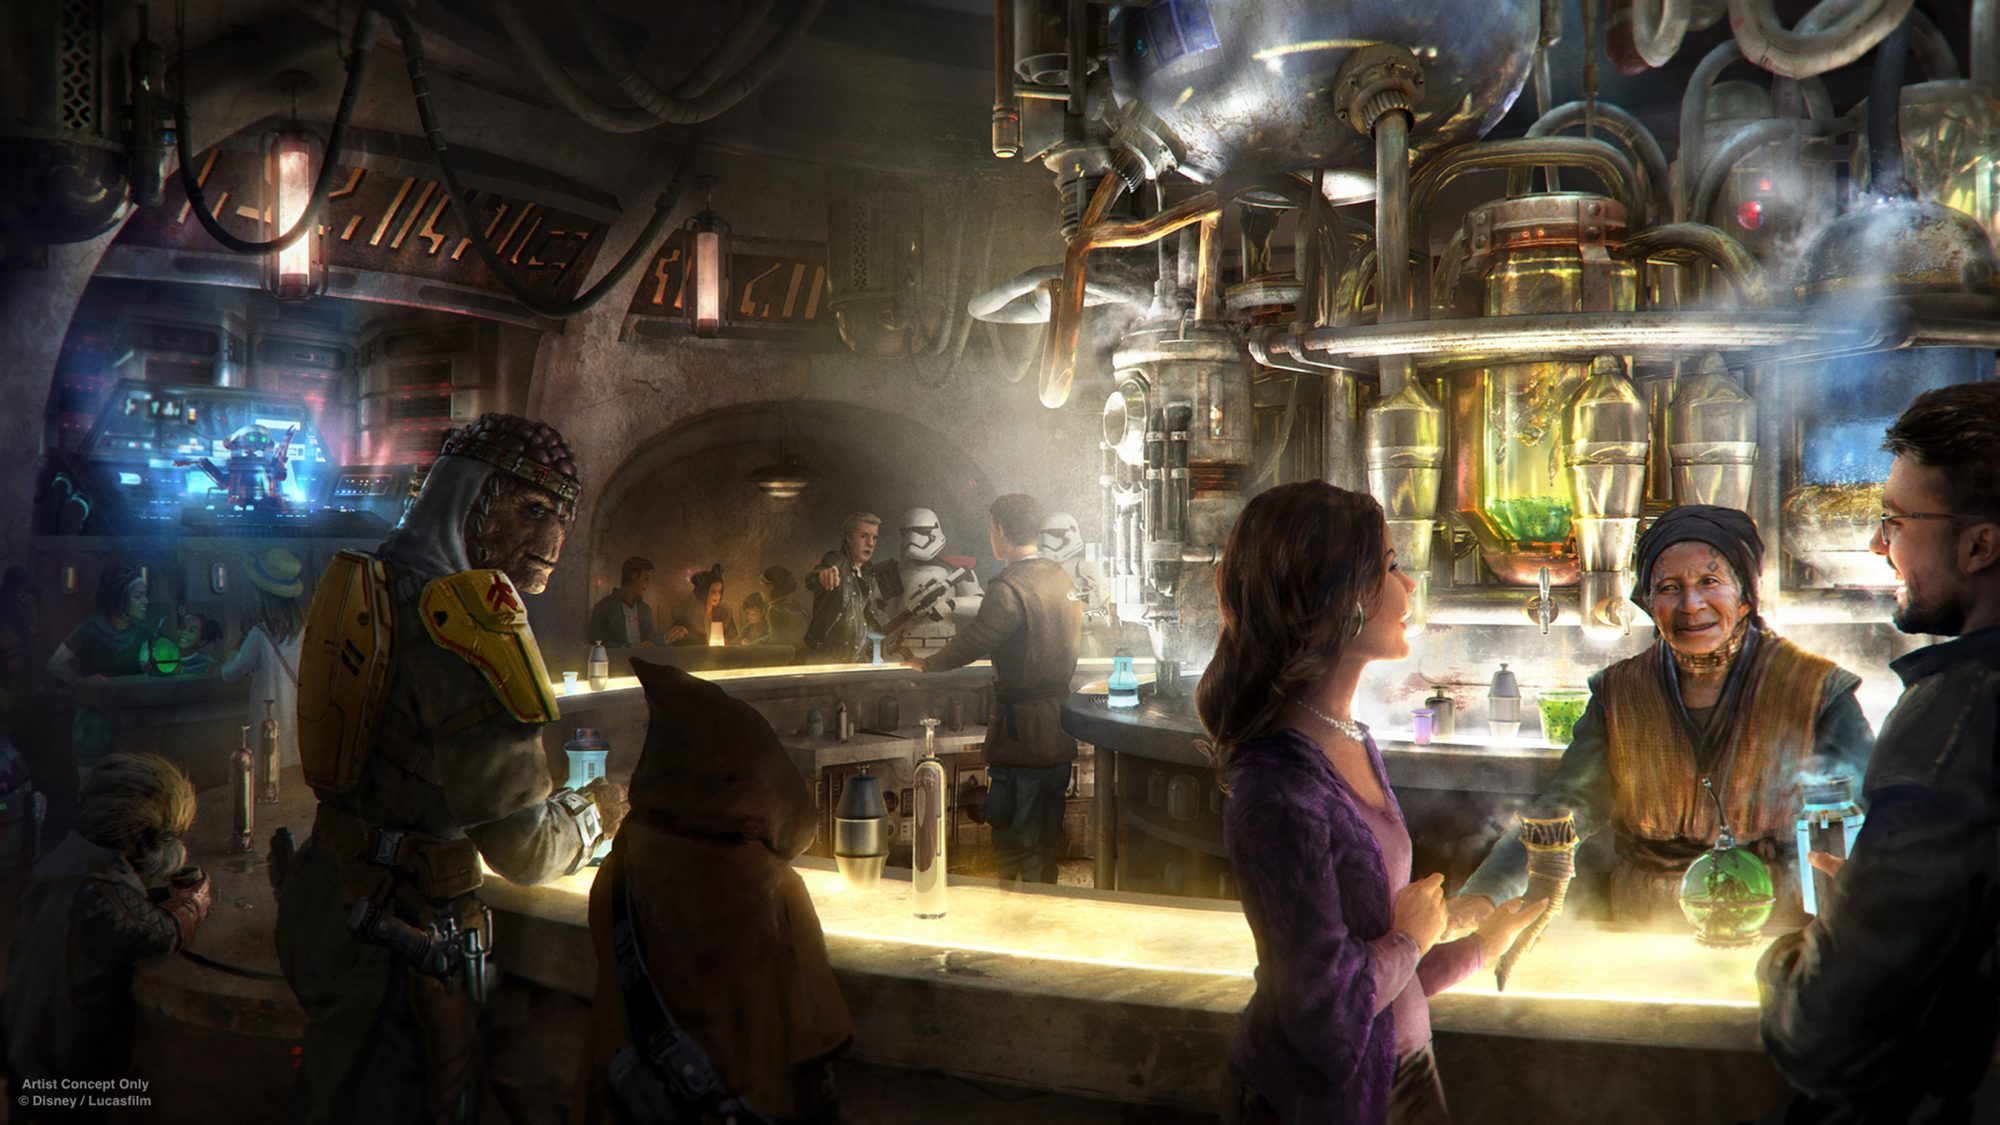 Star Wars: Galaxy's Edge – Oga's Cantina